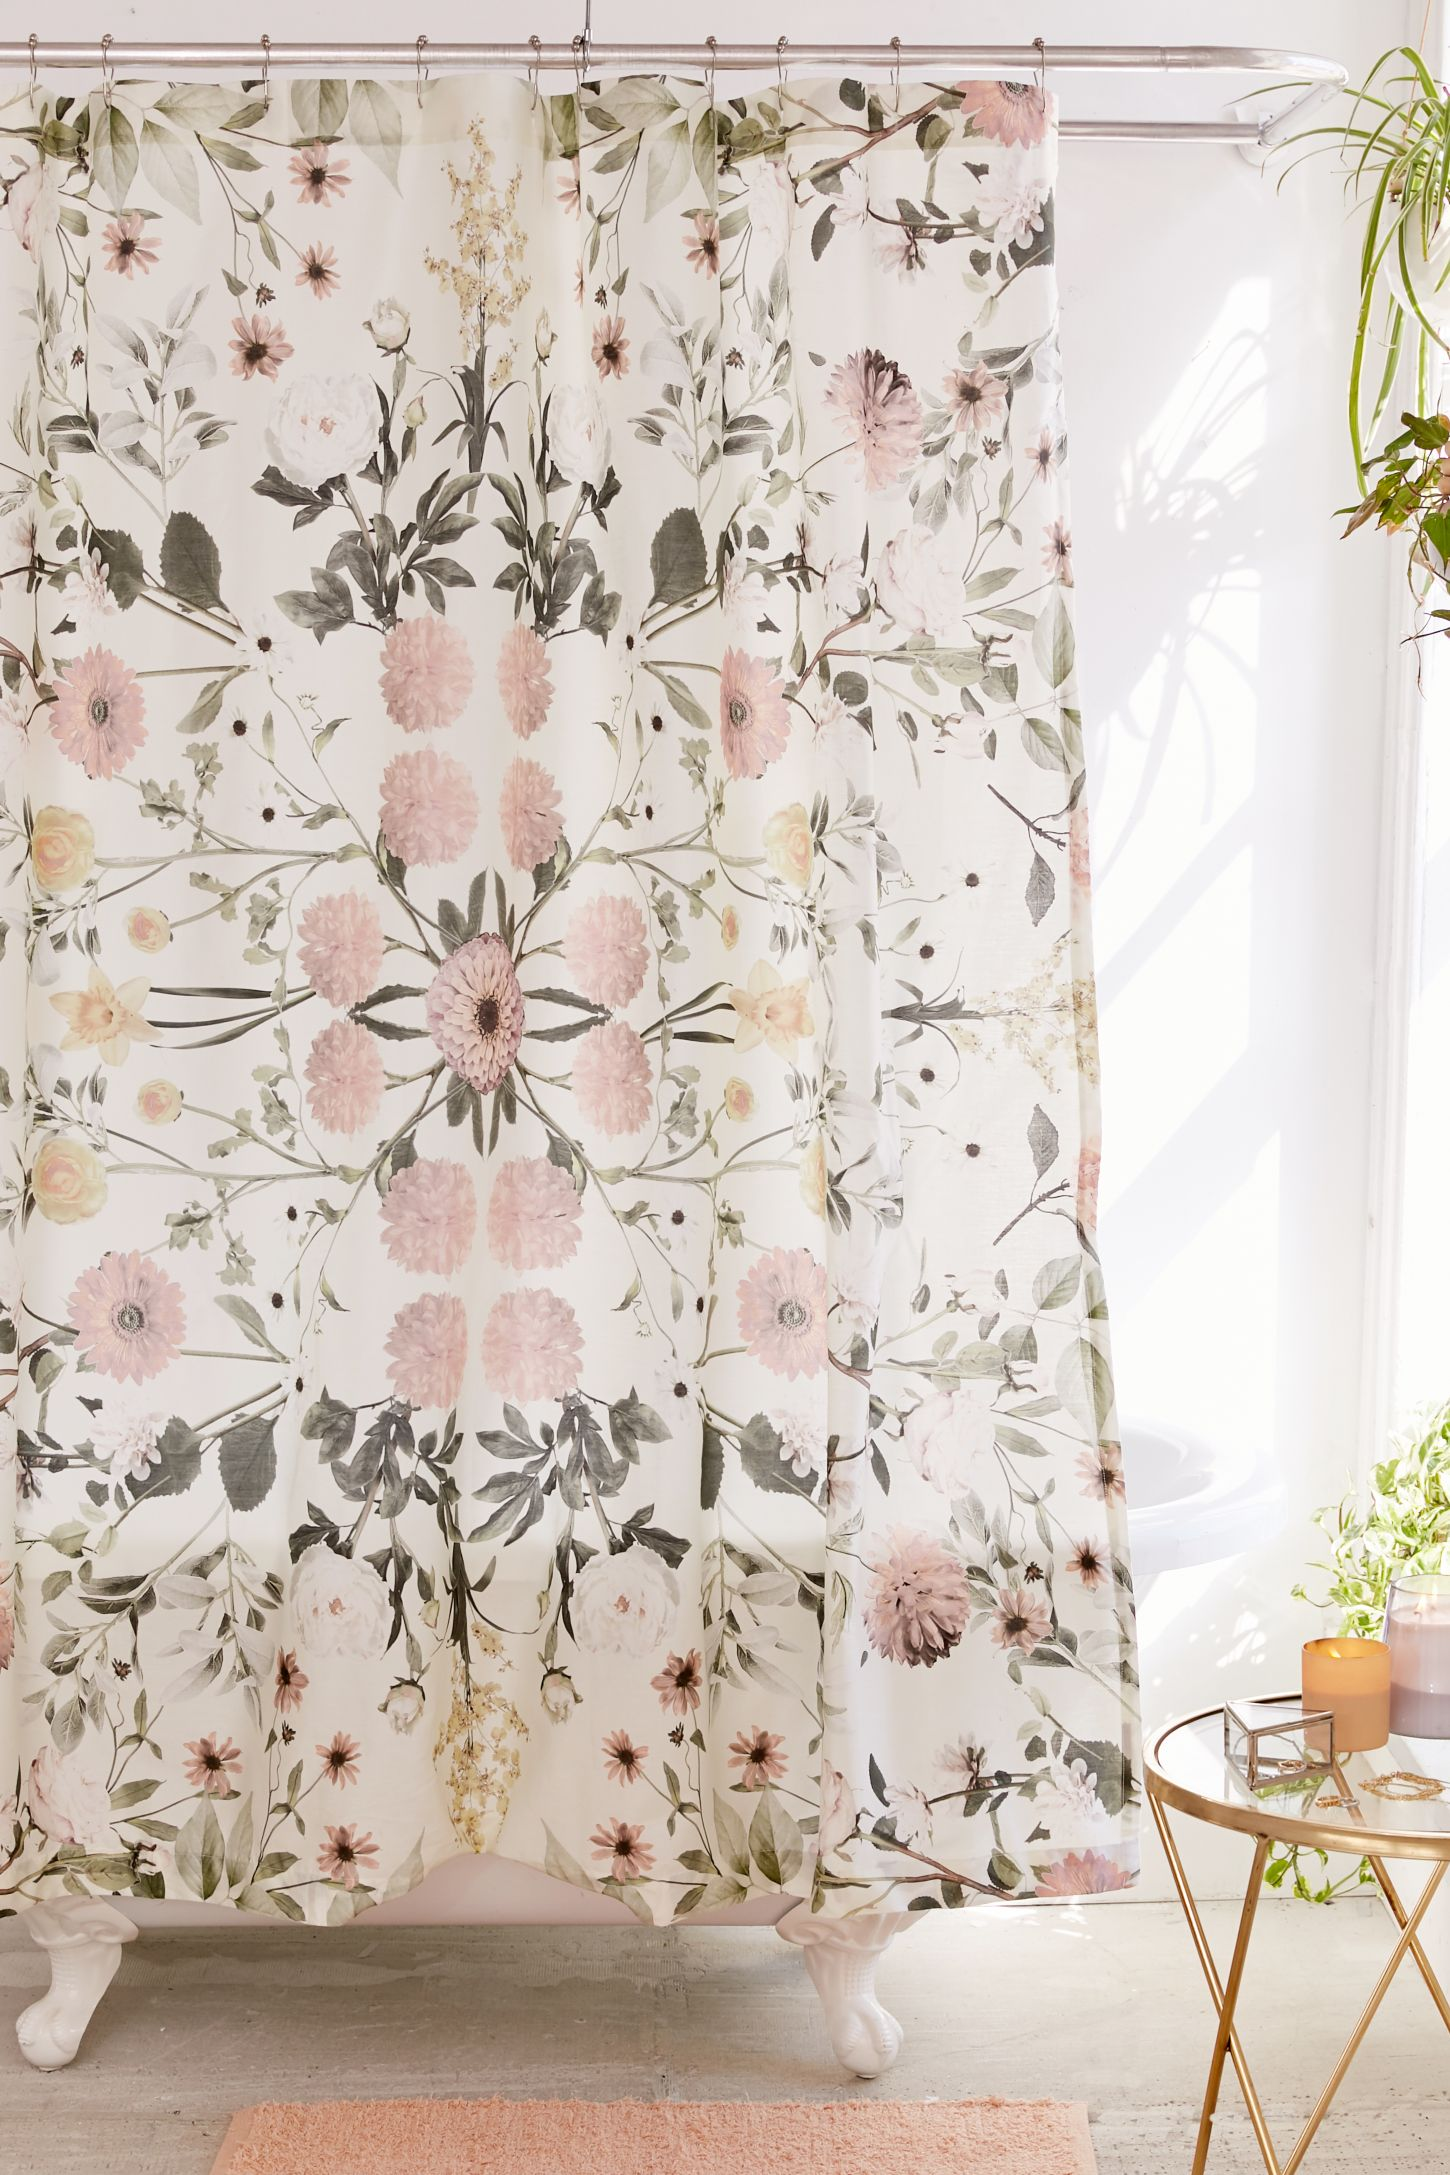 Beautiful Bathroom Decor Ideas with Floral Shower Curtain: Shower Curt | Floral Shower Curtain | India Shower Curtain